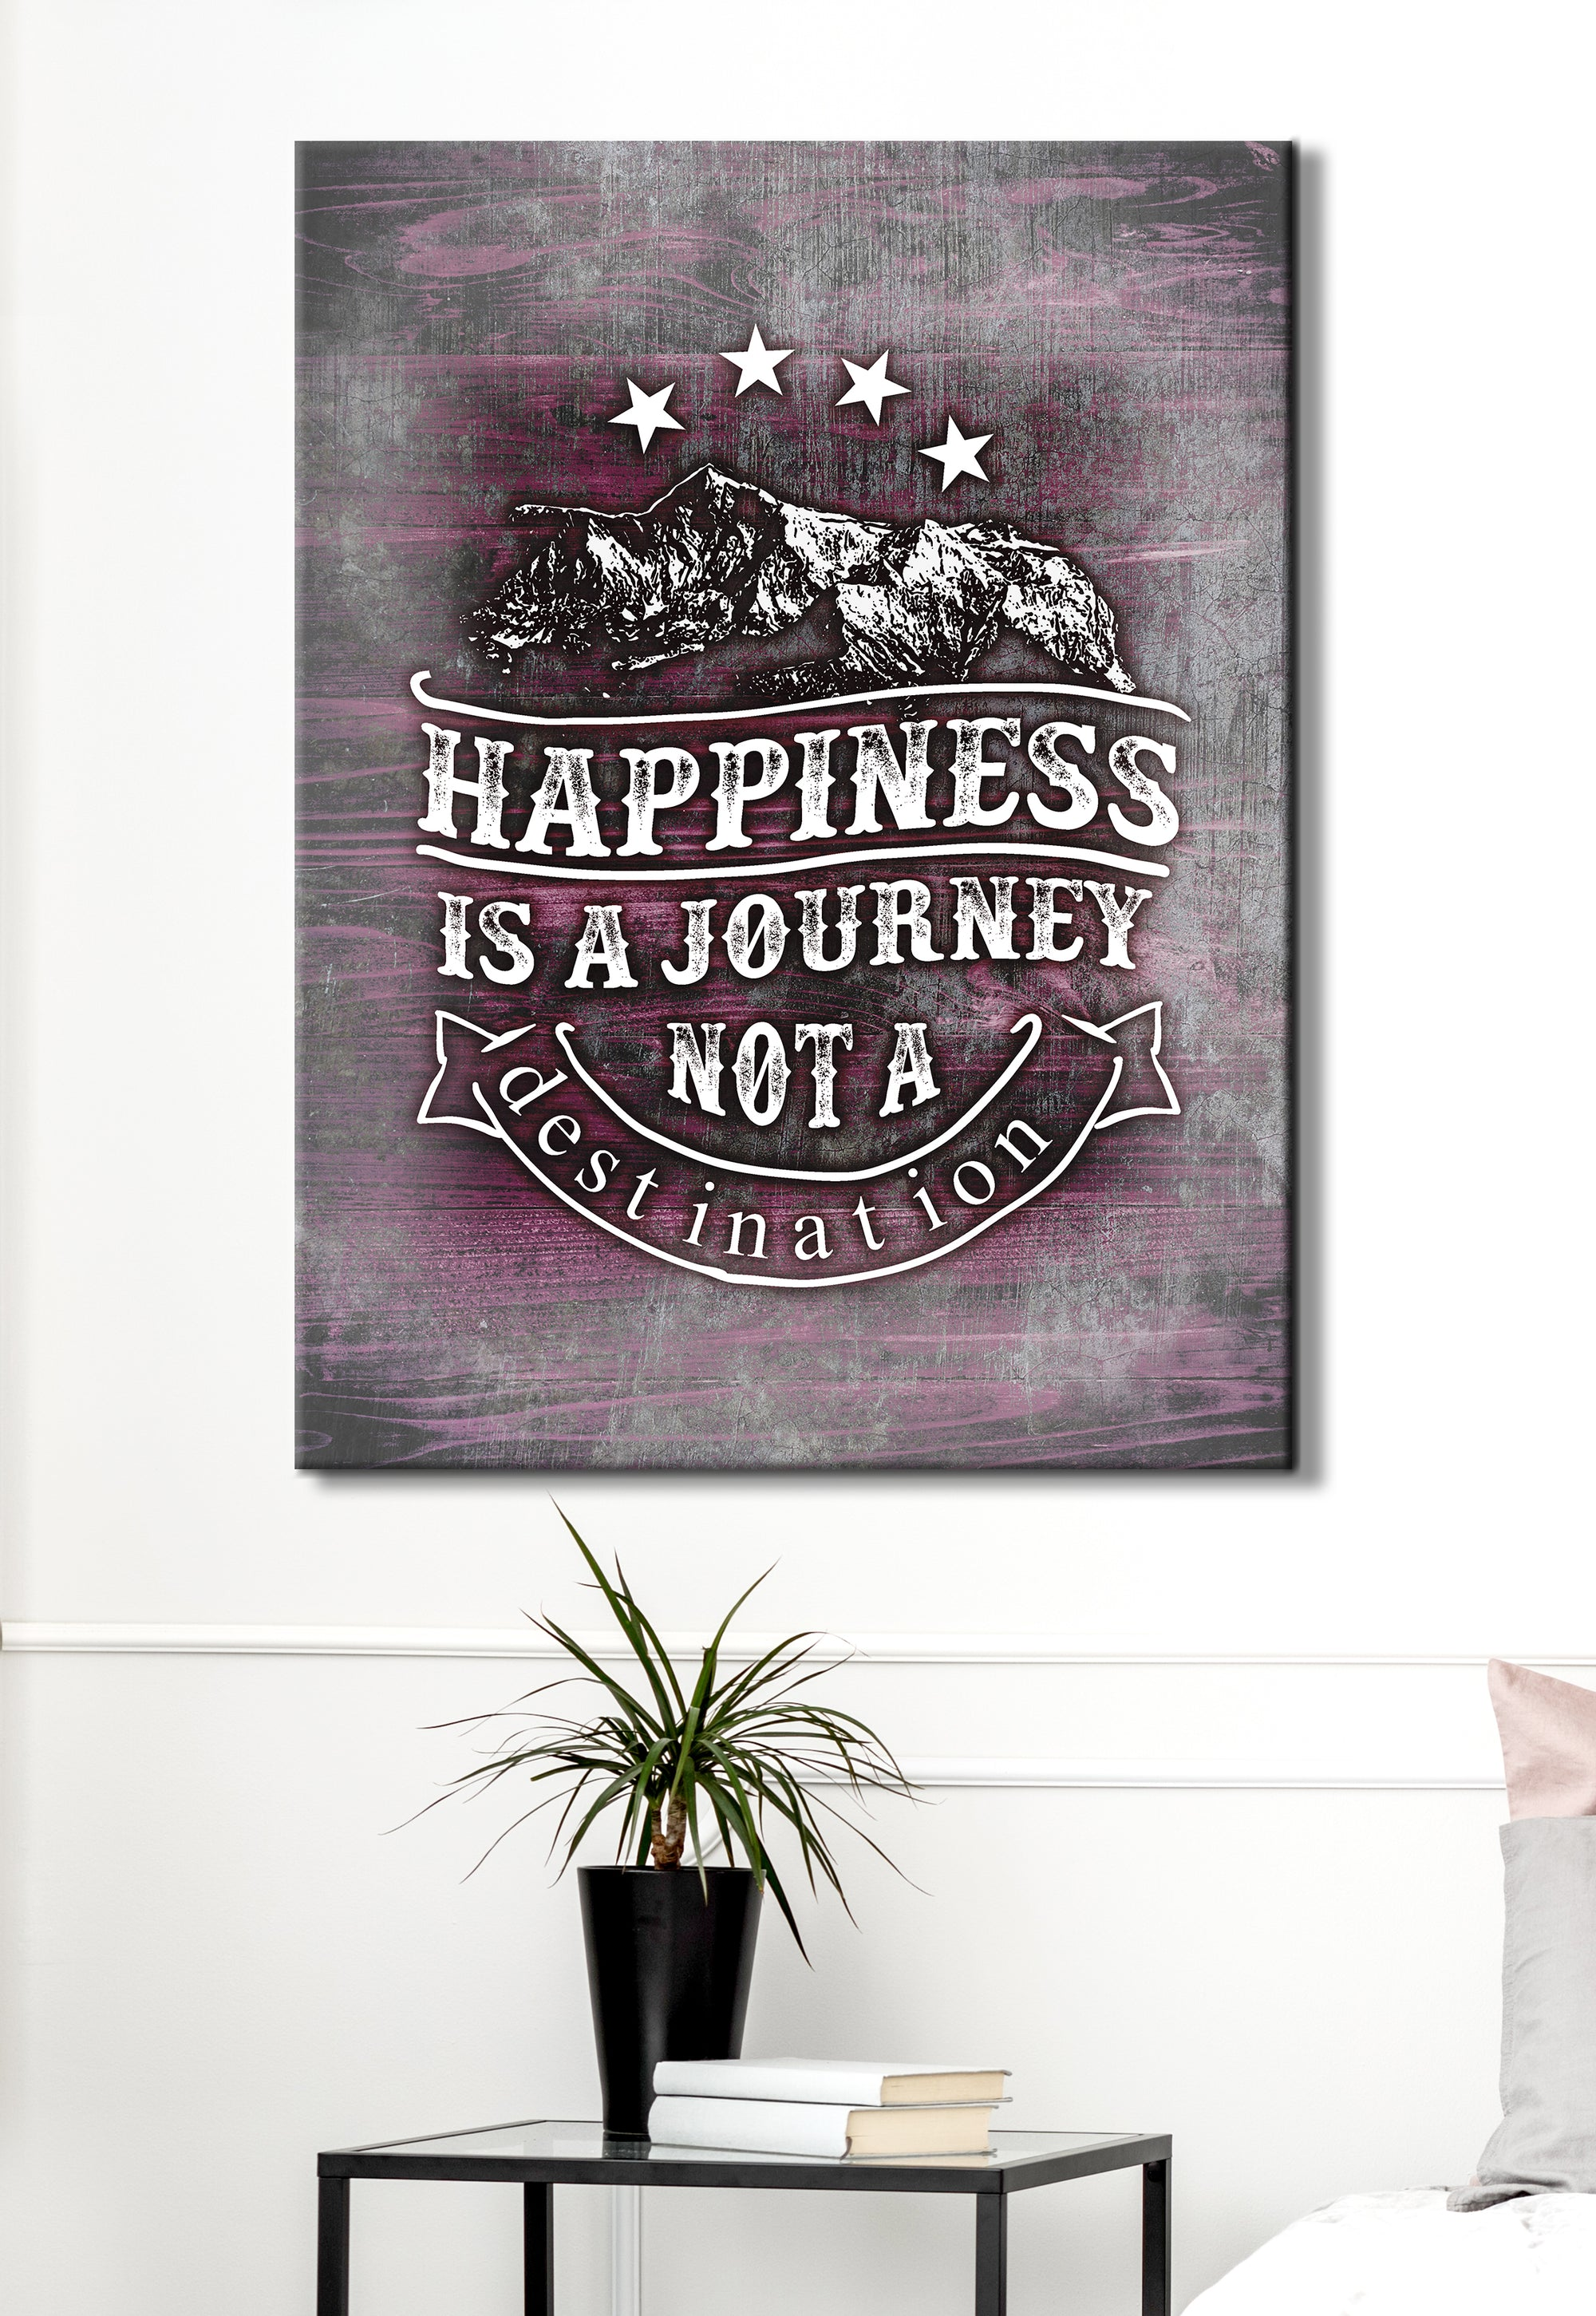 Vintage Style Art: Happiness Is A Journey (Wood Frame Ready To Hang)